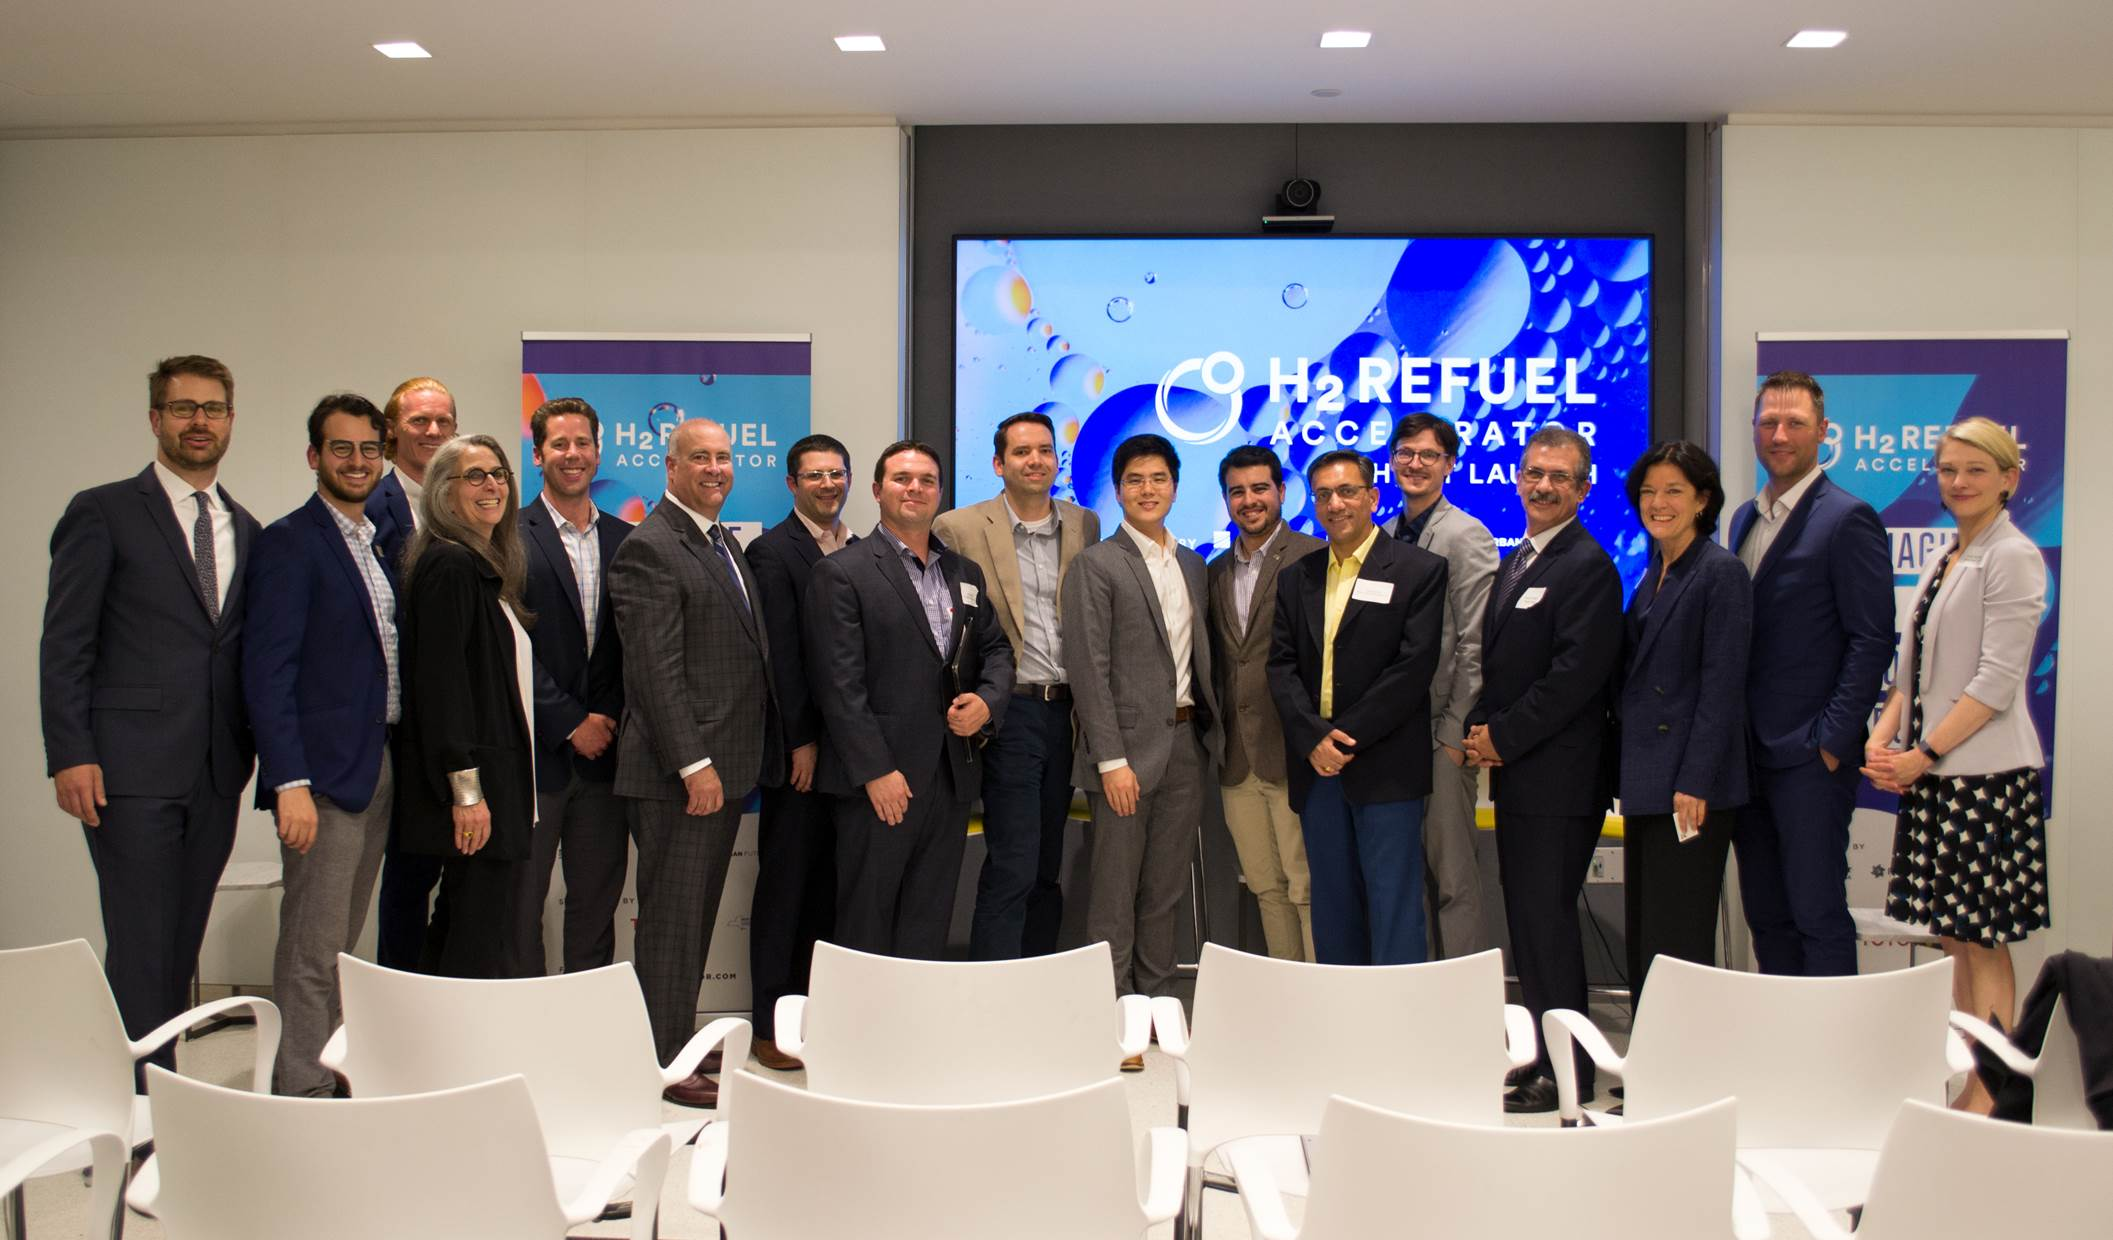 Photo: Urban Future Lab.  H2 REFUEL COHORT LAUNCH PARTY with H2 Refuel Accelerator startups, partners and sponsors at the Canadian Consulate, NYC on June 13, 2019. From left to right: Nick Rancis – Fraunhofer USA, Joe Silver – Urban Future Lab, Jake Fisher - Protium Innovation; Pat Sapinsley – Urban Future Lab; Nick Querques – NYSERDA; Trent M. Molter – Skyre; Adam Ruder – NYSERDA; Ian Richardson - Protium Innovations; Paul Matter – pH Matter; Gary K. Ong – Celadyne; Gabriel G Rodriguez-Calero - Ecolectro; Abhijeet P. Borole - Electro-Active Technologies; Alex J. Lewis - Electro-Active Technologies; Mario Pirraglia – HYGEN; Nancy Selman - Skyre; Matthew Blieske – Shell; Emily Reichert – Greentown Labs.